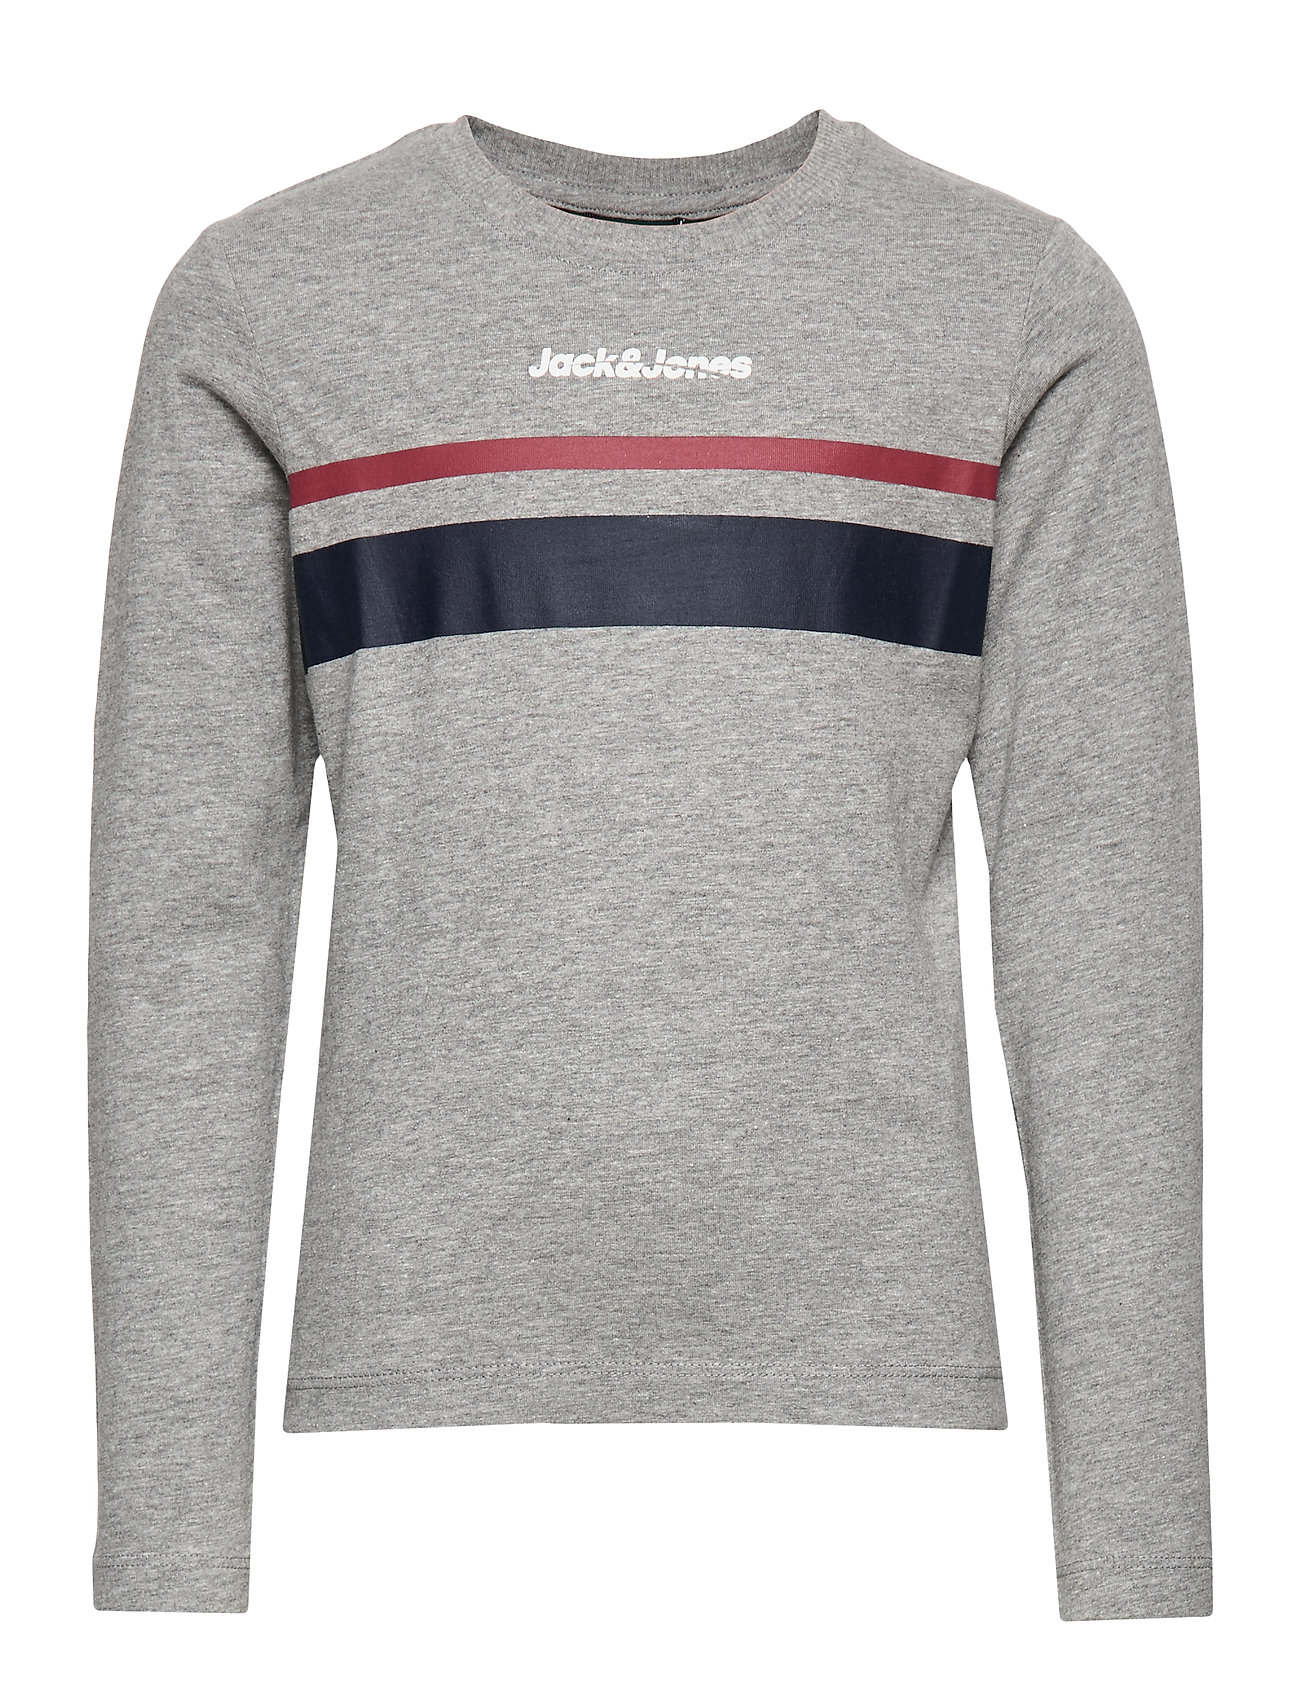 Jack & Jones JORCAINE TEE LS CREW NECK JR - LIGHT GREY MELANGE